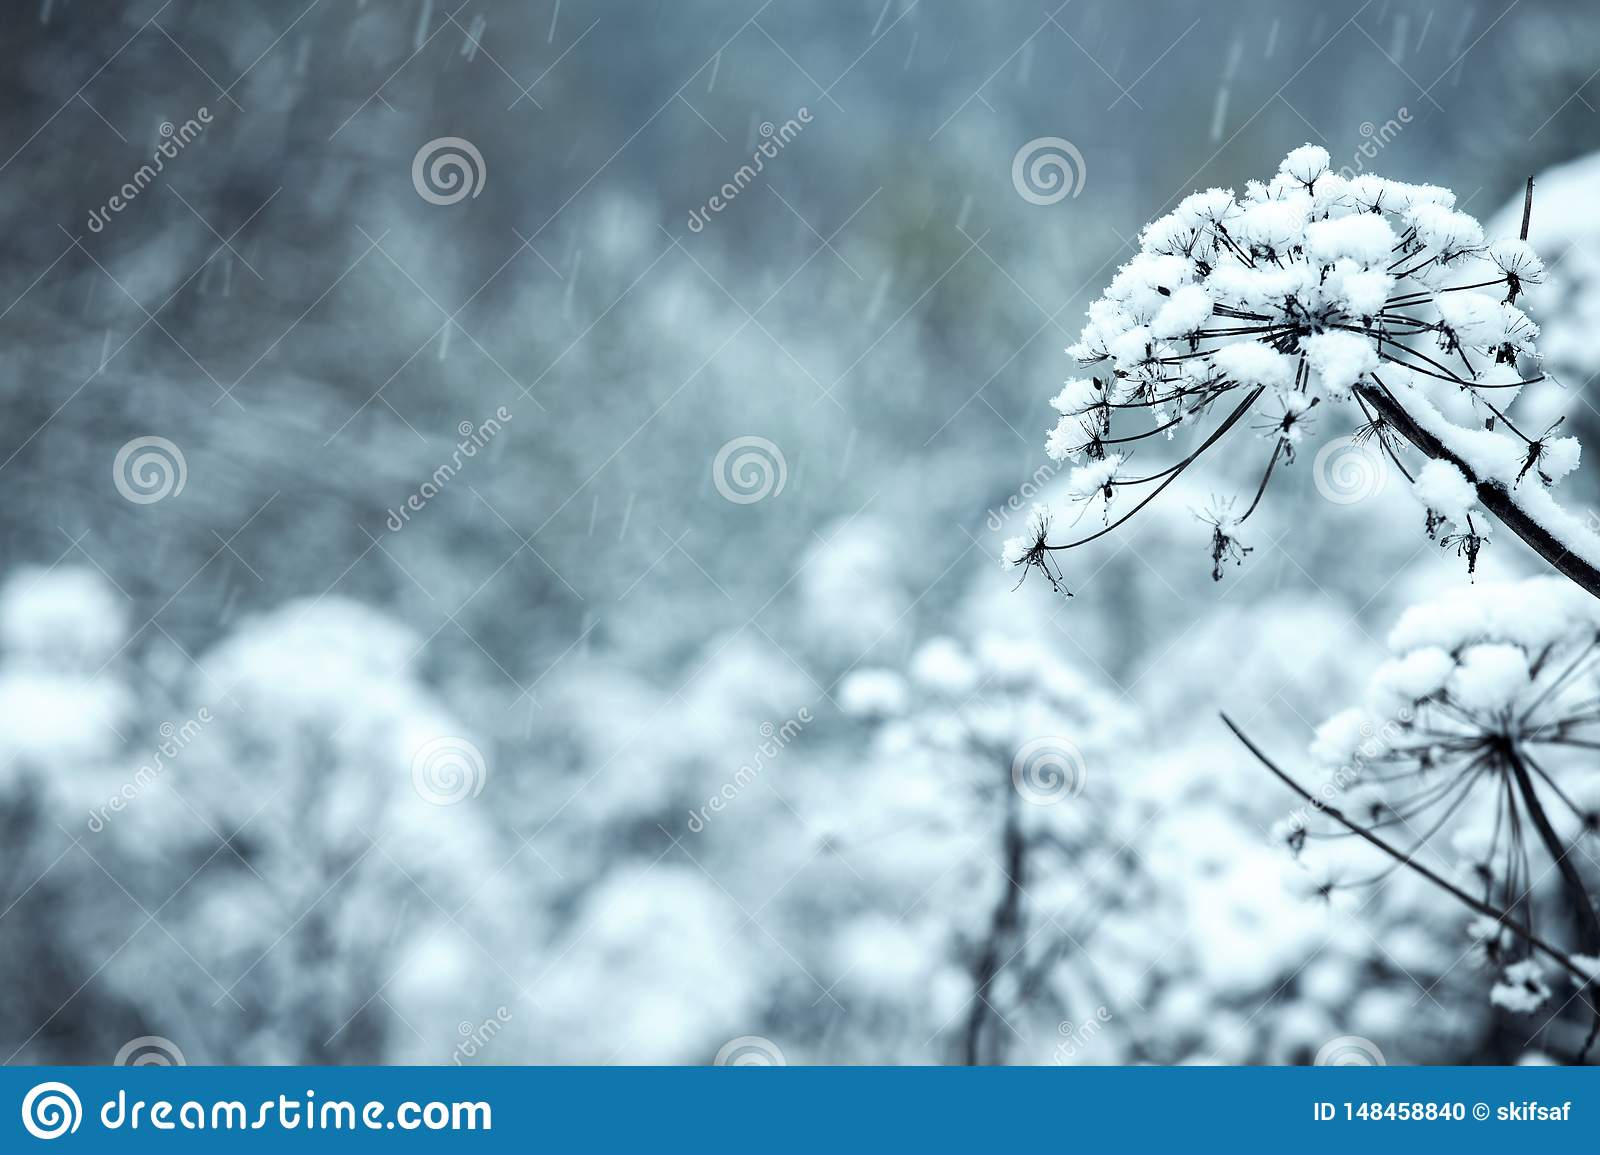 The flowers are covered with ice, snow